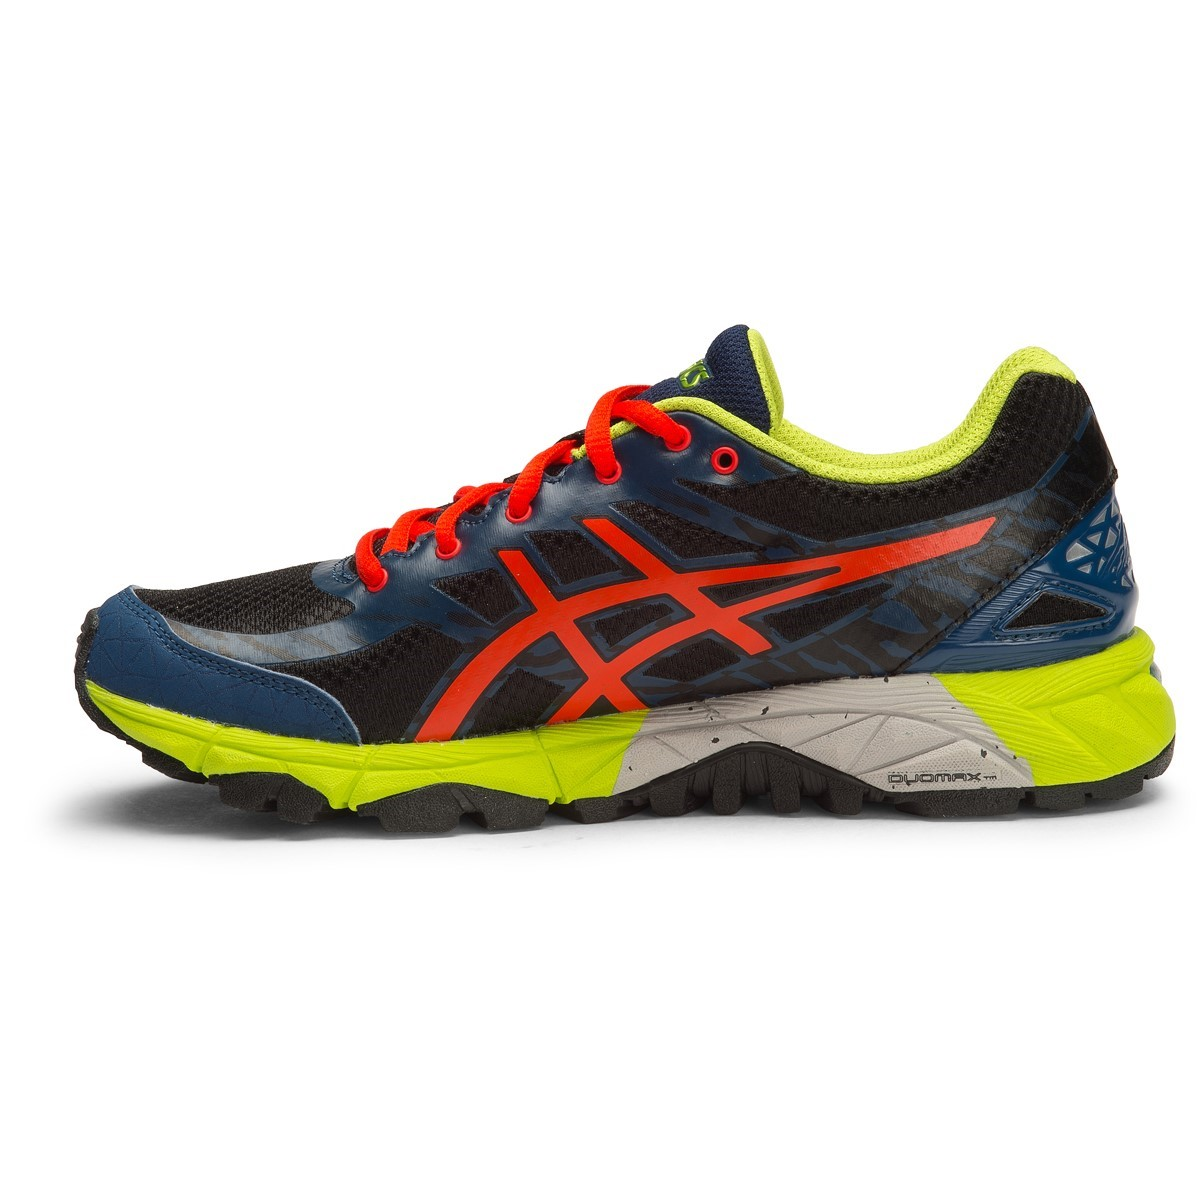 asics gel fuji trabuco 5 gs kids boys trail running shoes black flame orange poseidon online. Black Bedroom Furniture Sets. Home Design Ideas